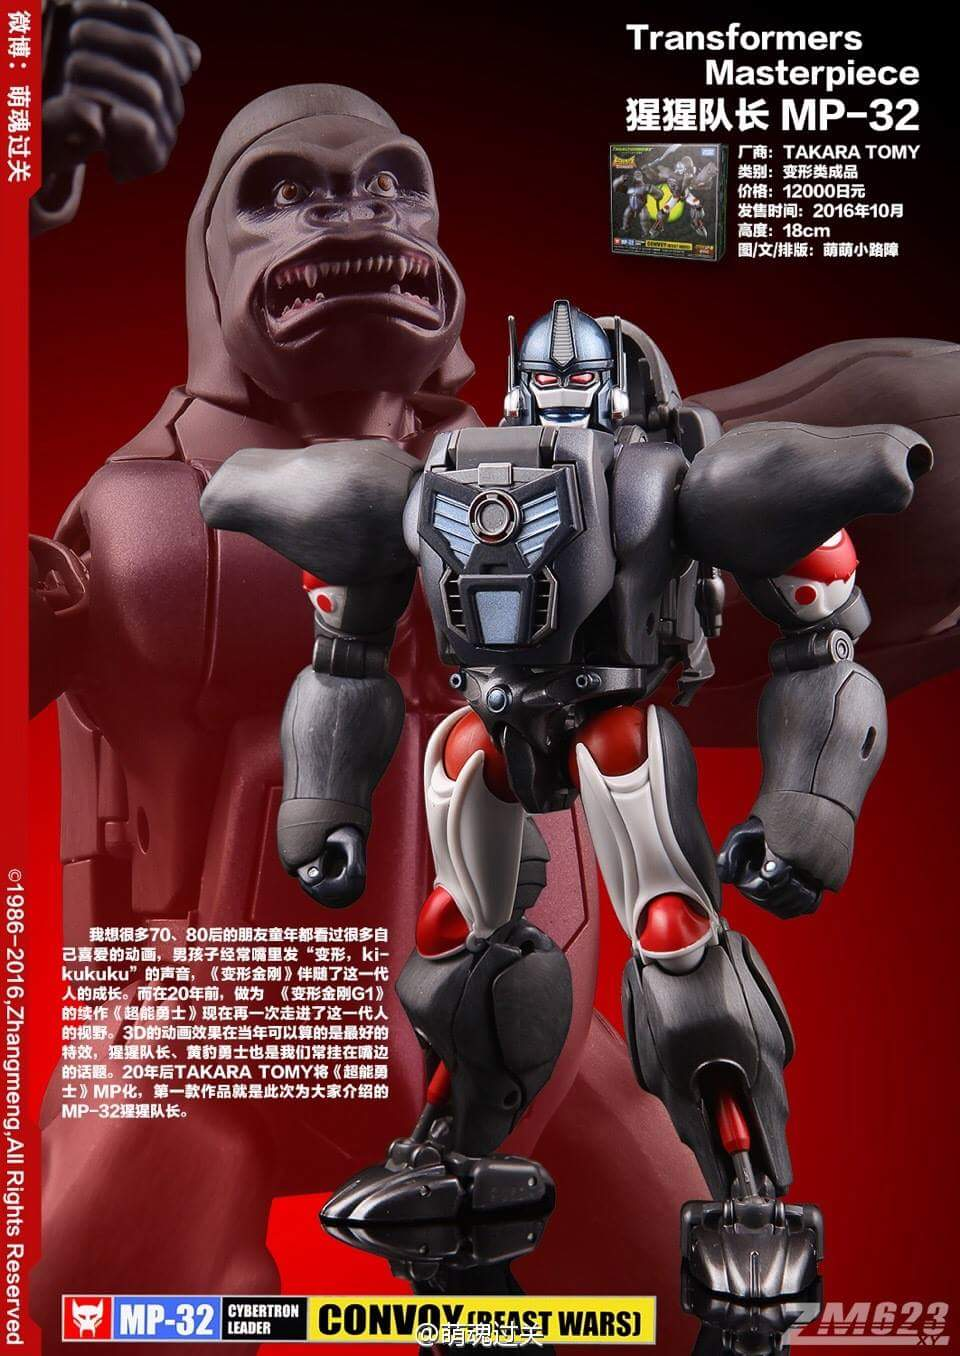 [Masterpiece] MP-32, MP-38 Optimus Primal et MP-38+ Burning Convoy (Beast Wars) - Page 3 S6FGMlrC